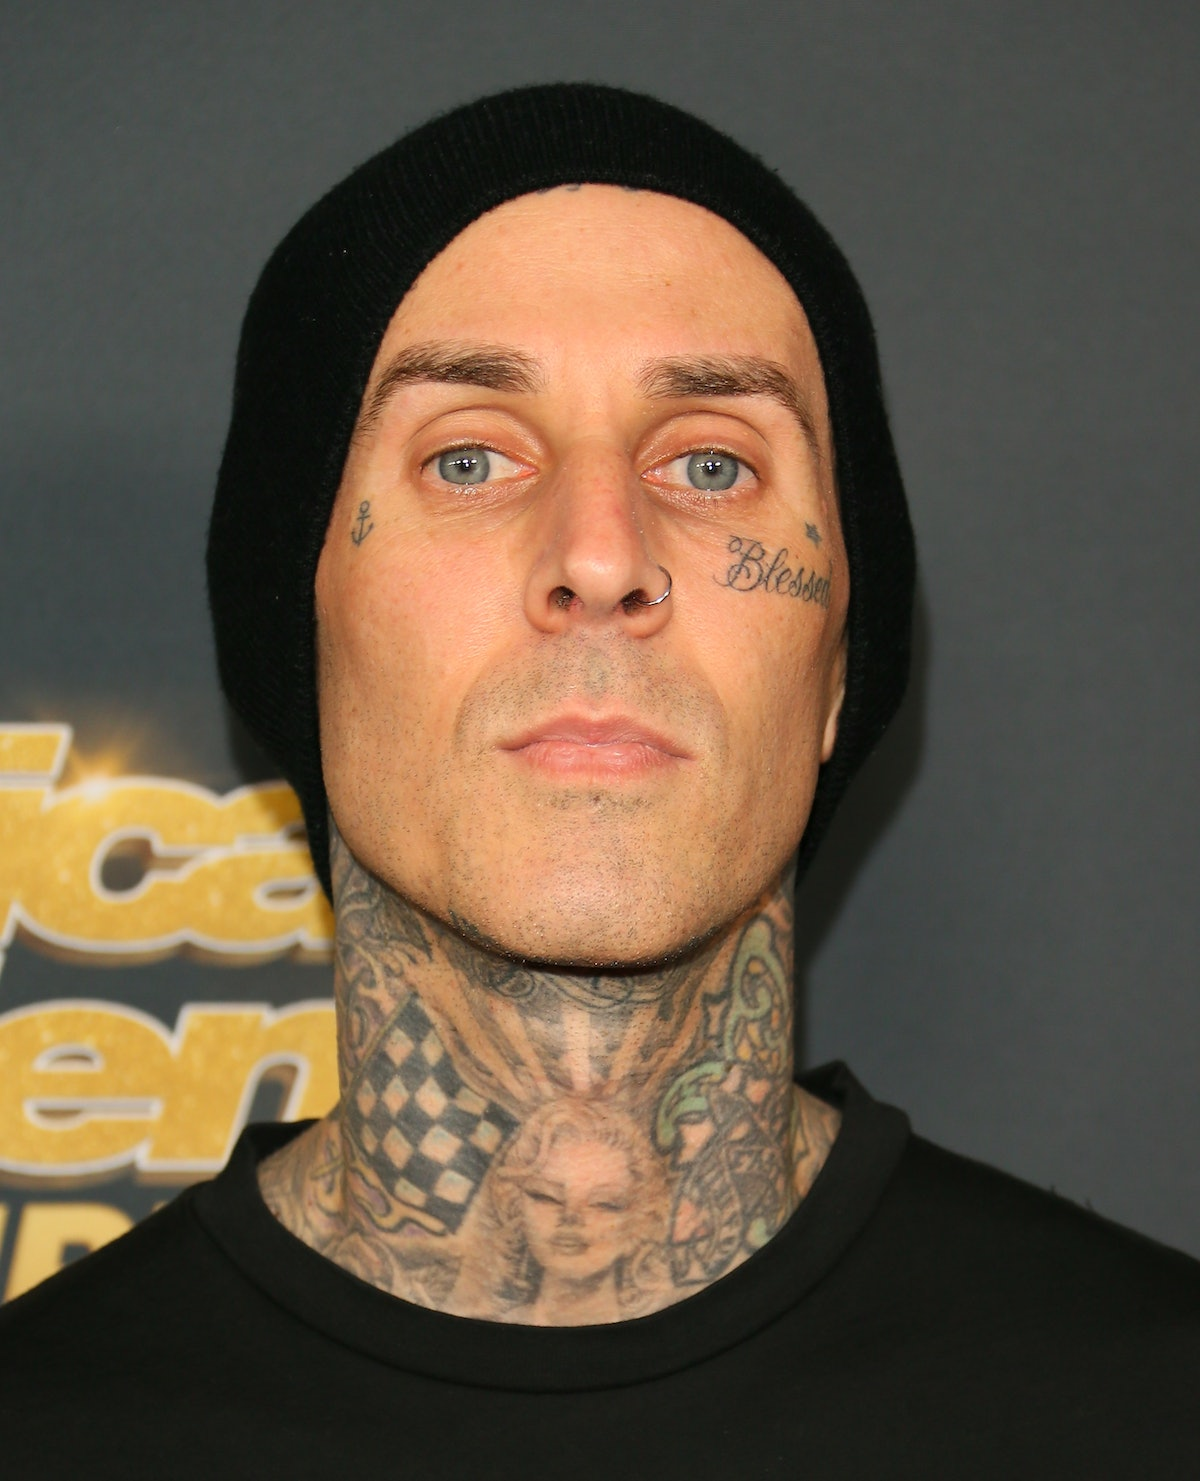 Shanna Moakler's Instagram video removing her Travis Barker tattoo is a lot.